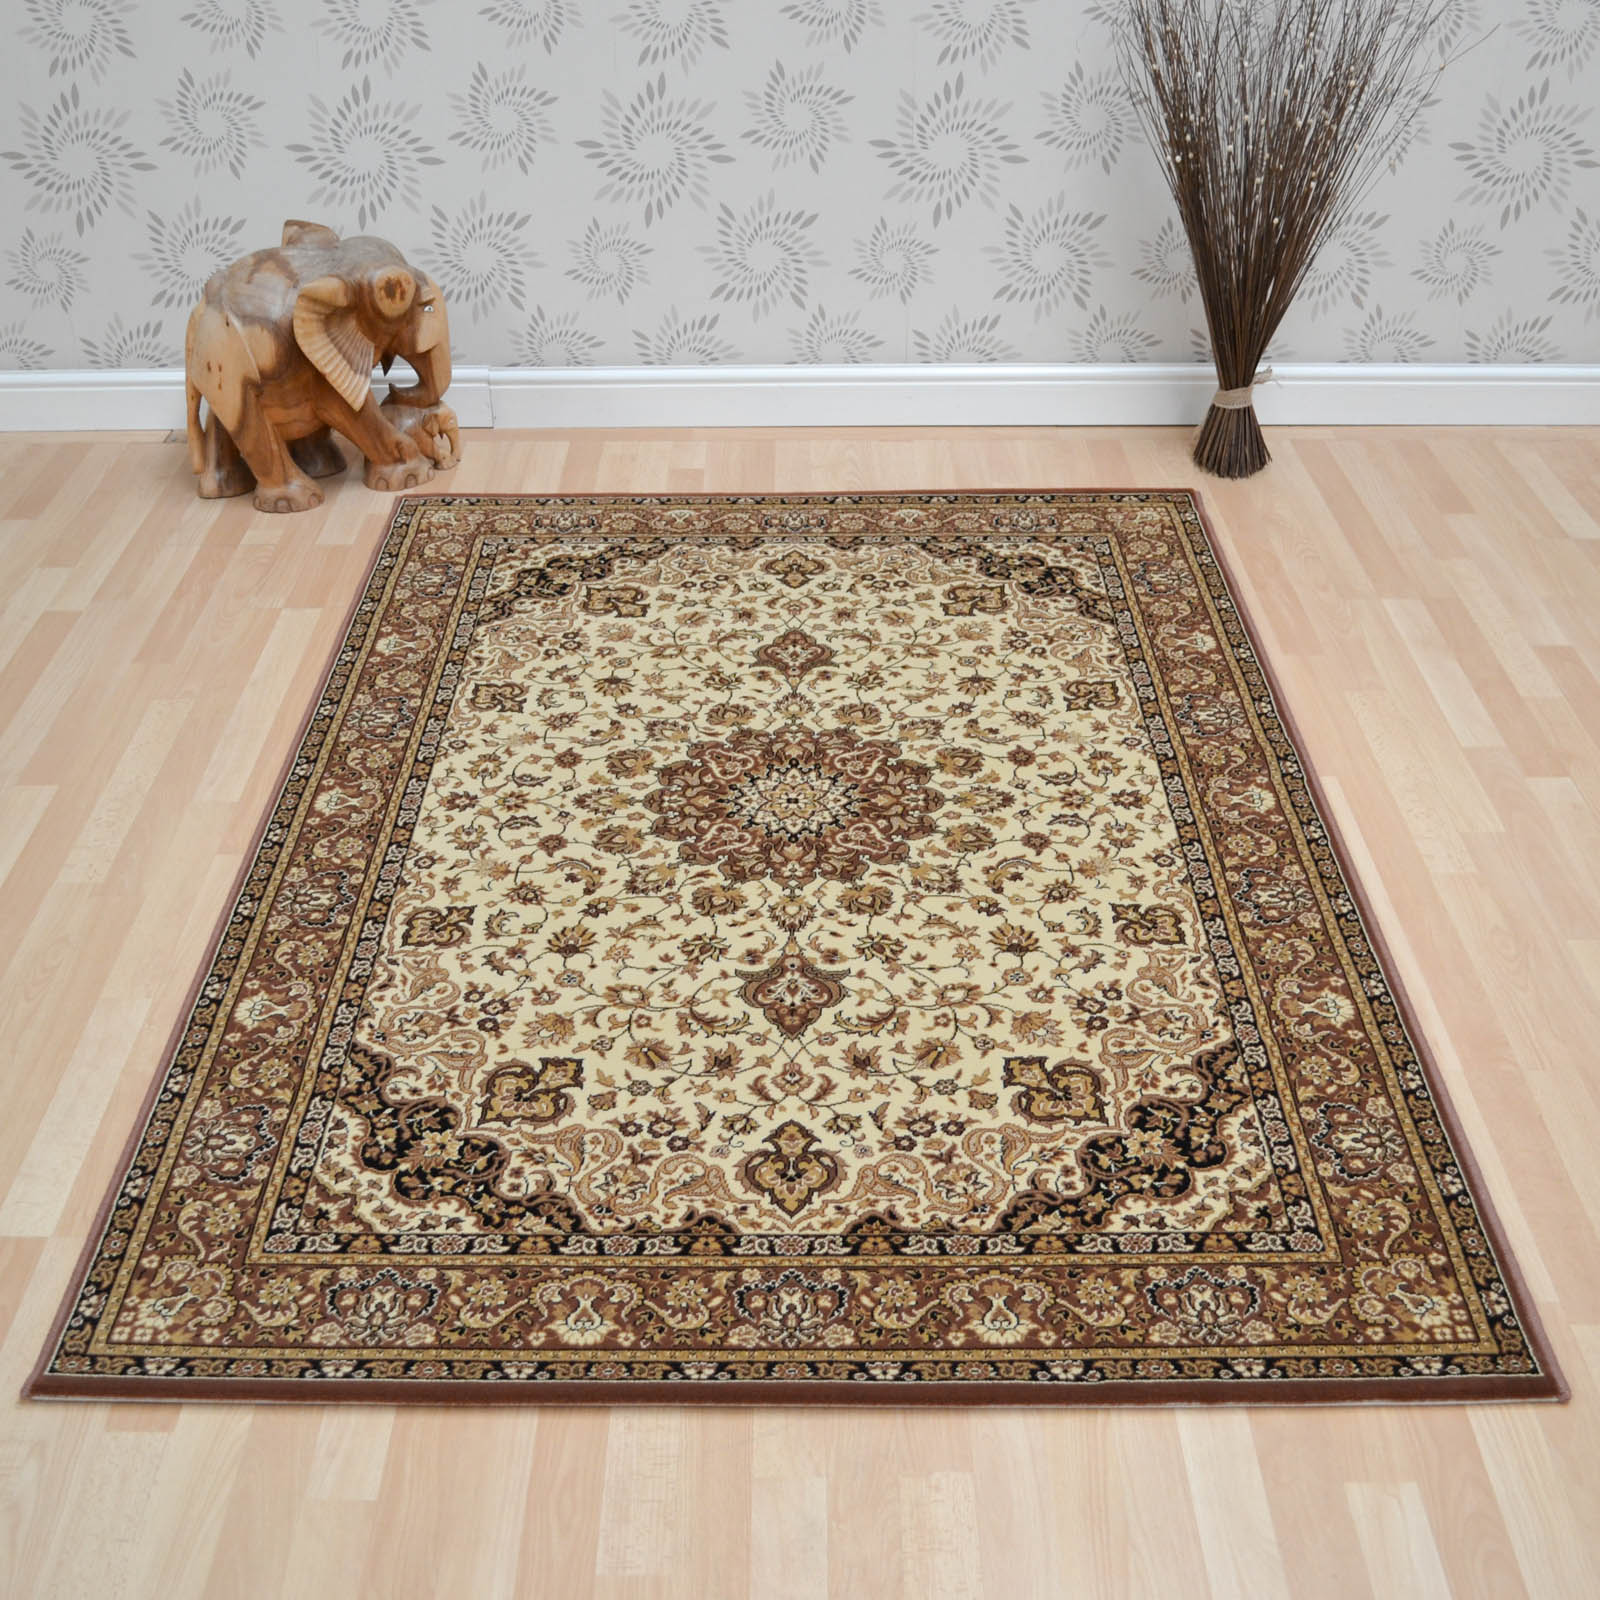 Lano Kasbah Rugs 12217 477 Beige Brown